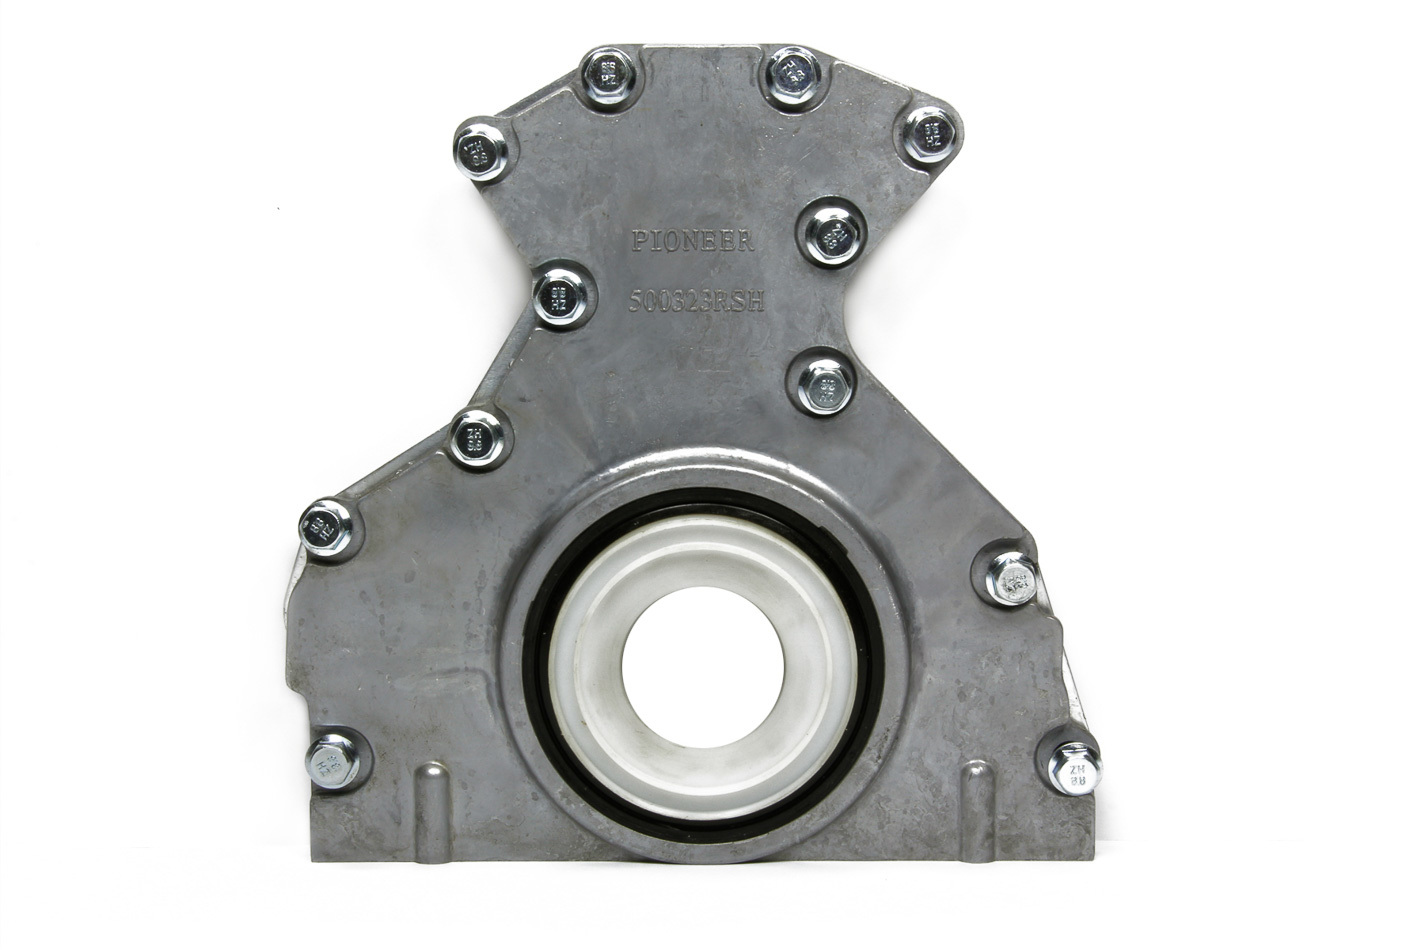 Pioneer Rear Back Cover Kit - GM LS1/LS2